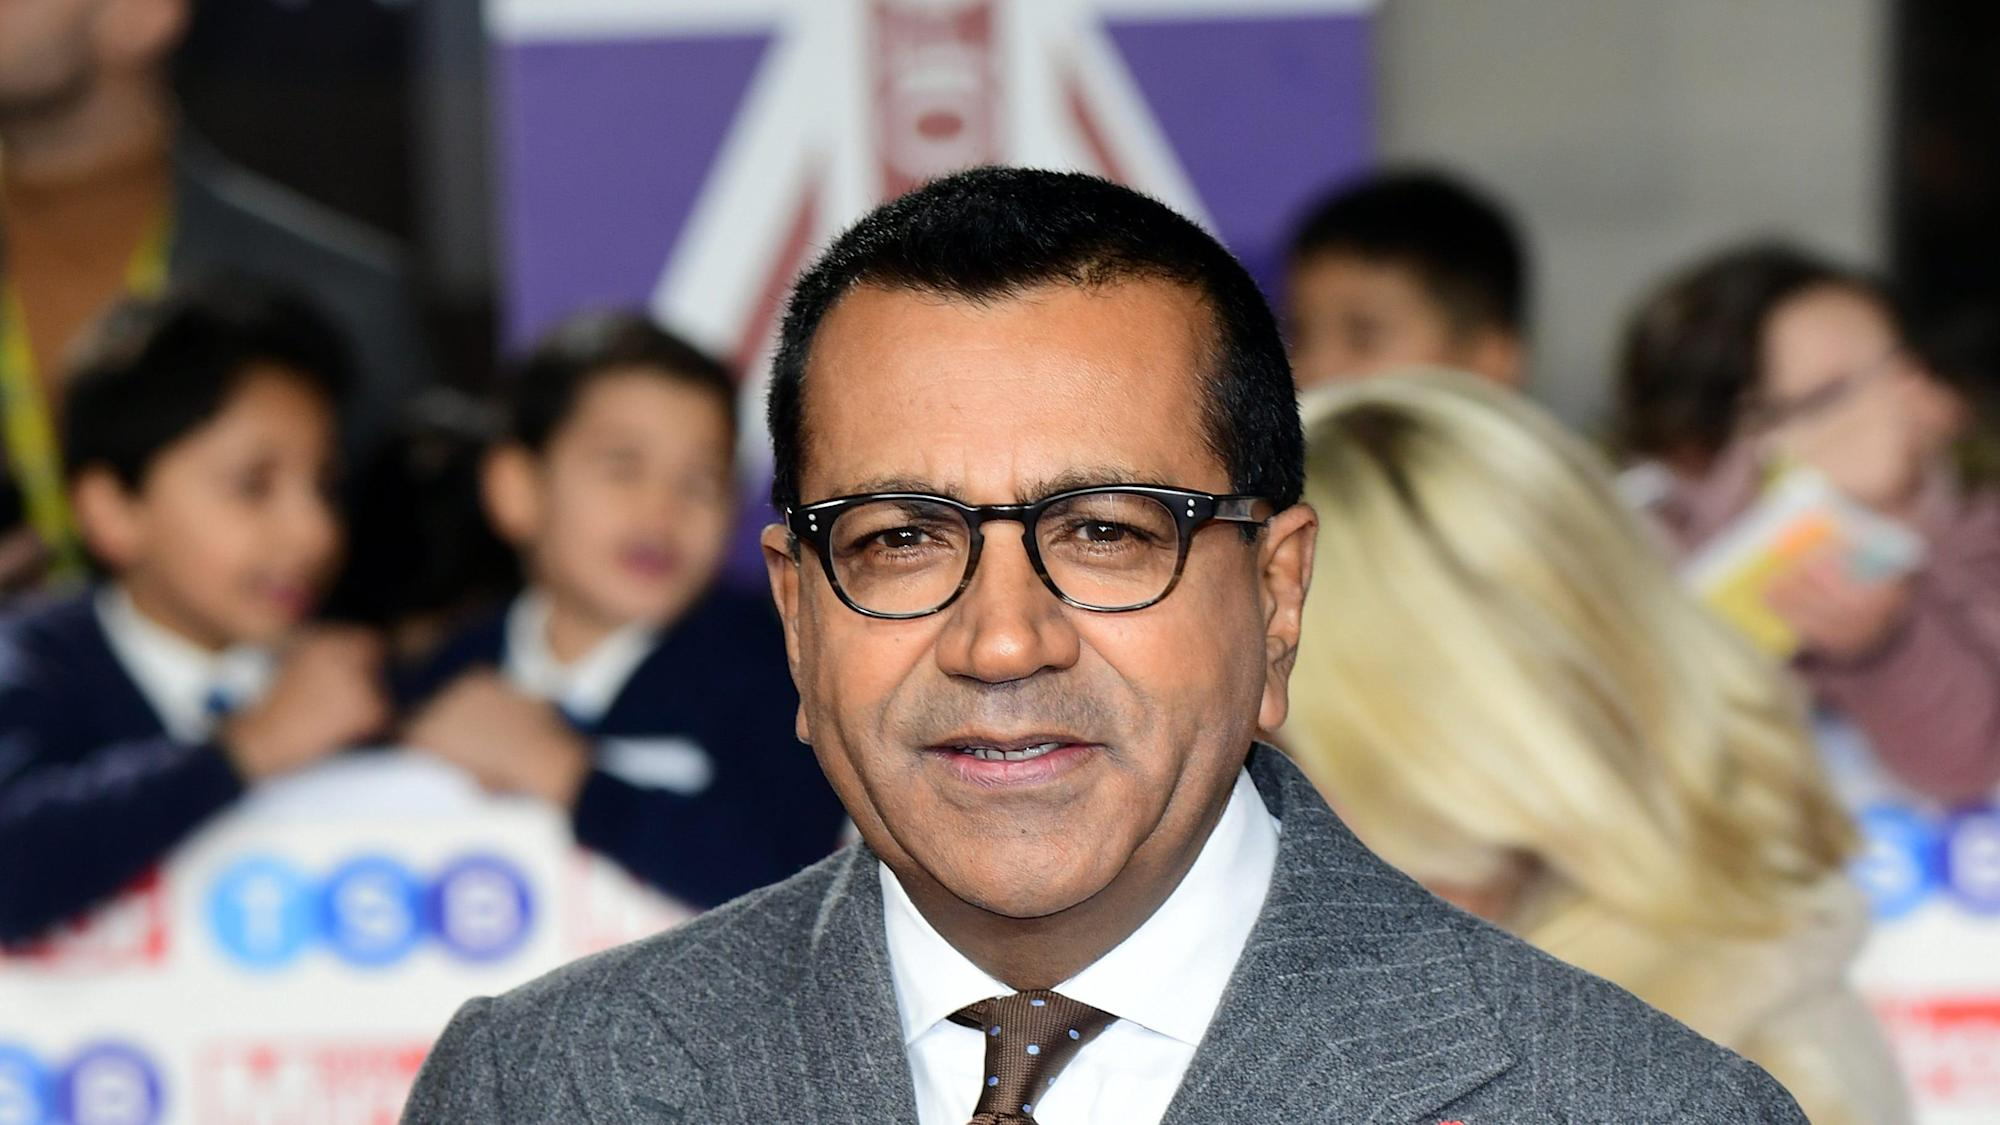 Martin Bashir quits the BBC amid investigation into Diana interview